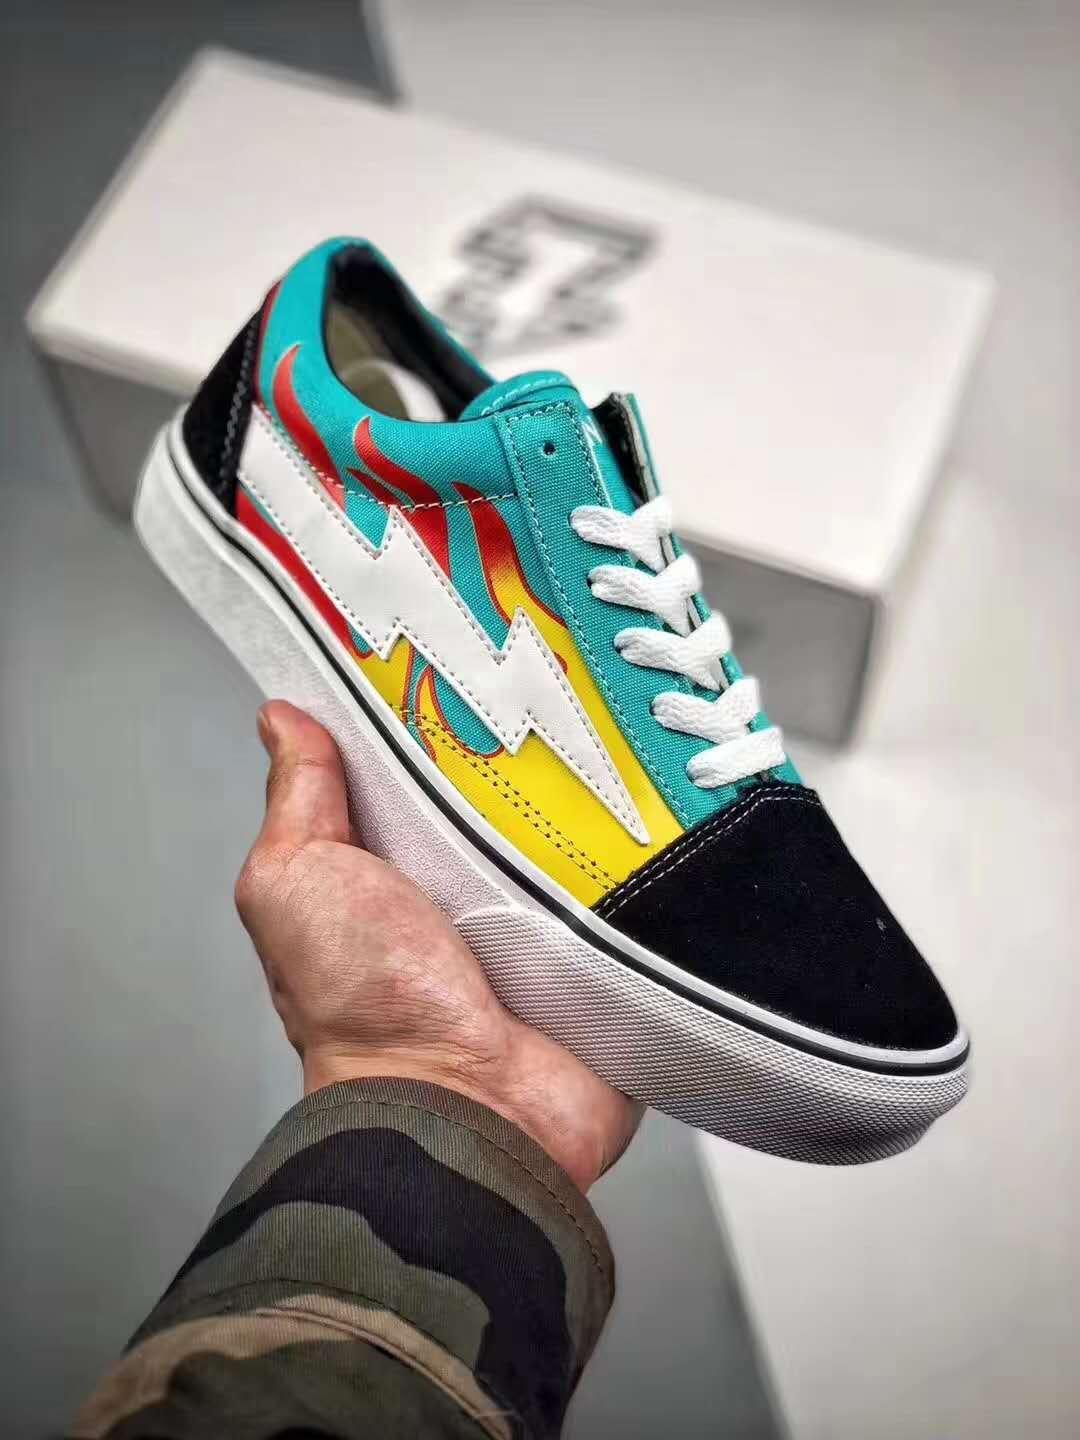 New Yezee Calabasas Stylist Ian Connors Revenge X Storm Old Skool Camo Sneakers kanye west calabasas Mens Womens Casual Canvas Shoes new for sale for sale buy authentic online sale 2014 newest C5Wfr